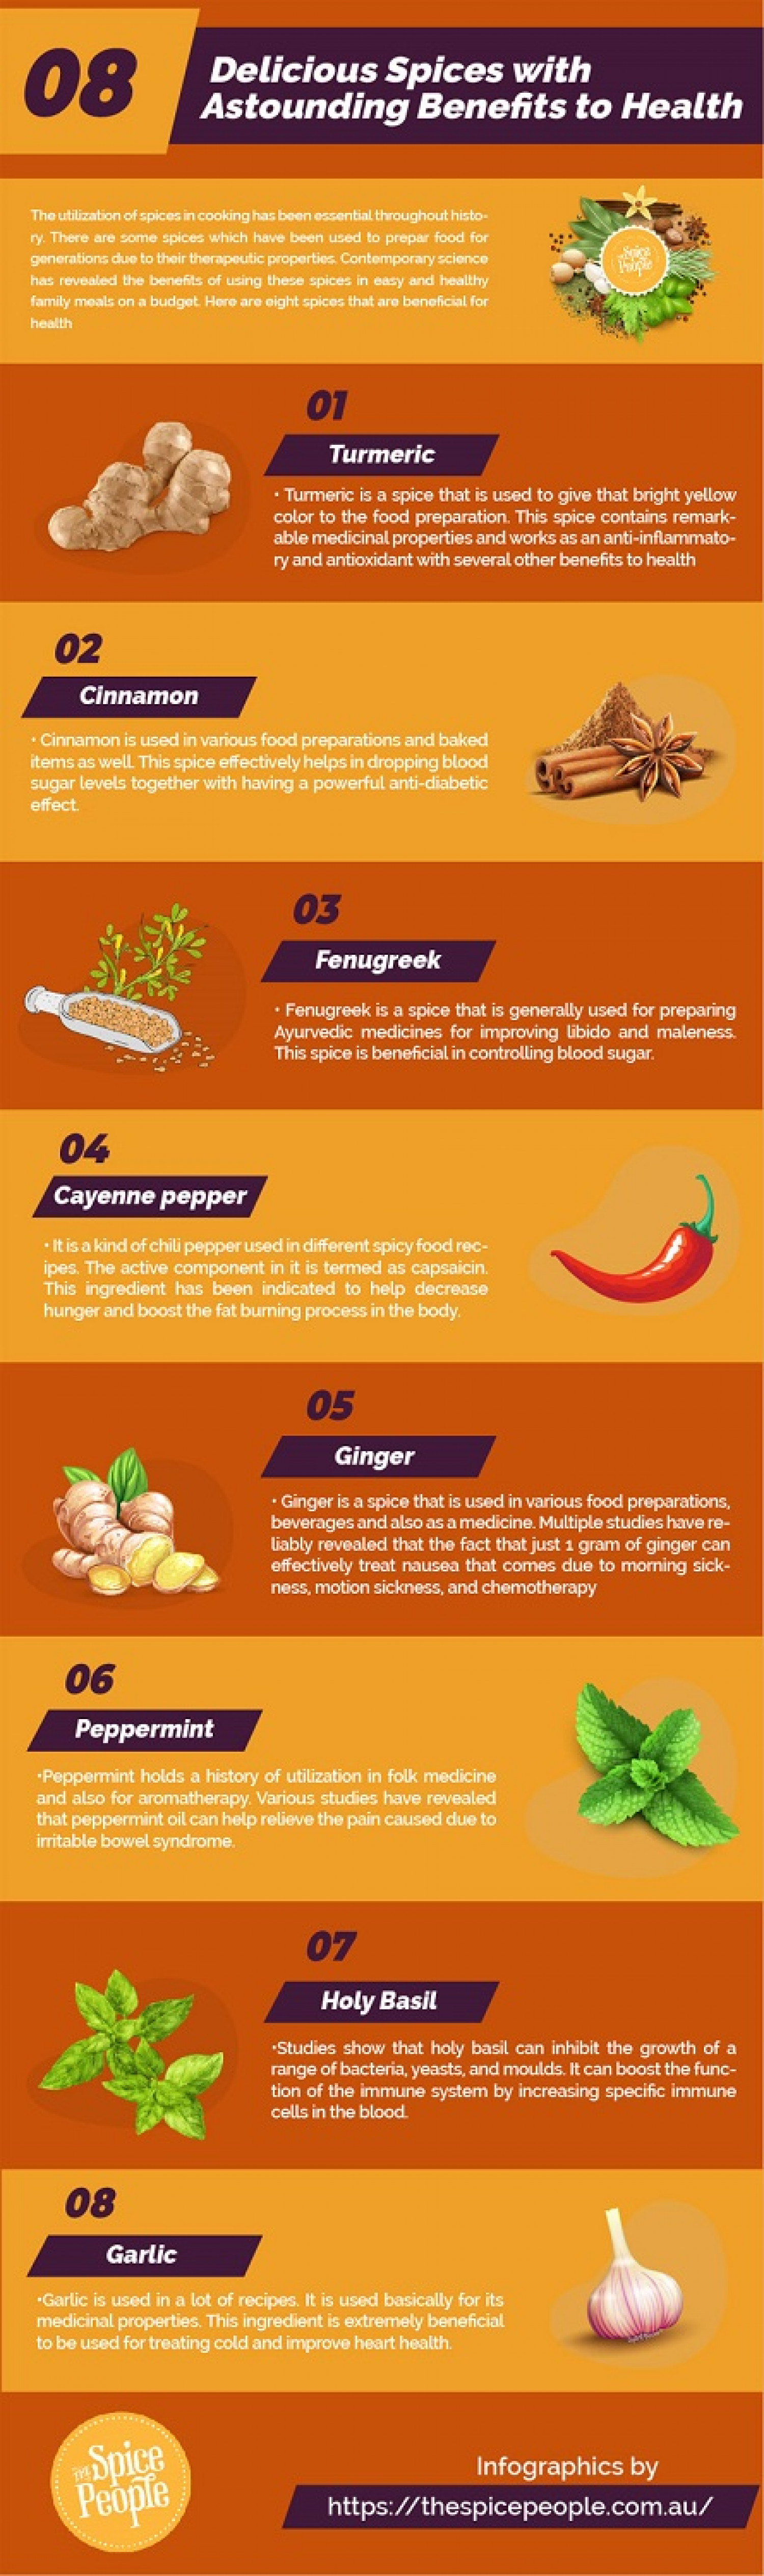 4 Major Spices With Significant Health Benefits Infographic